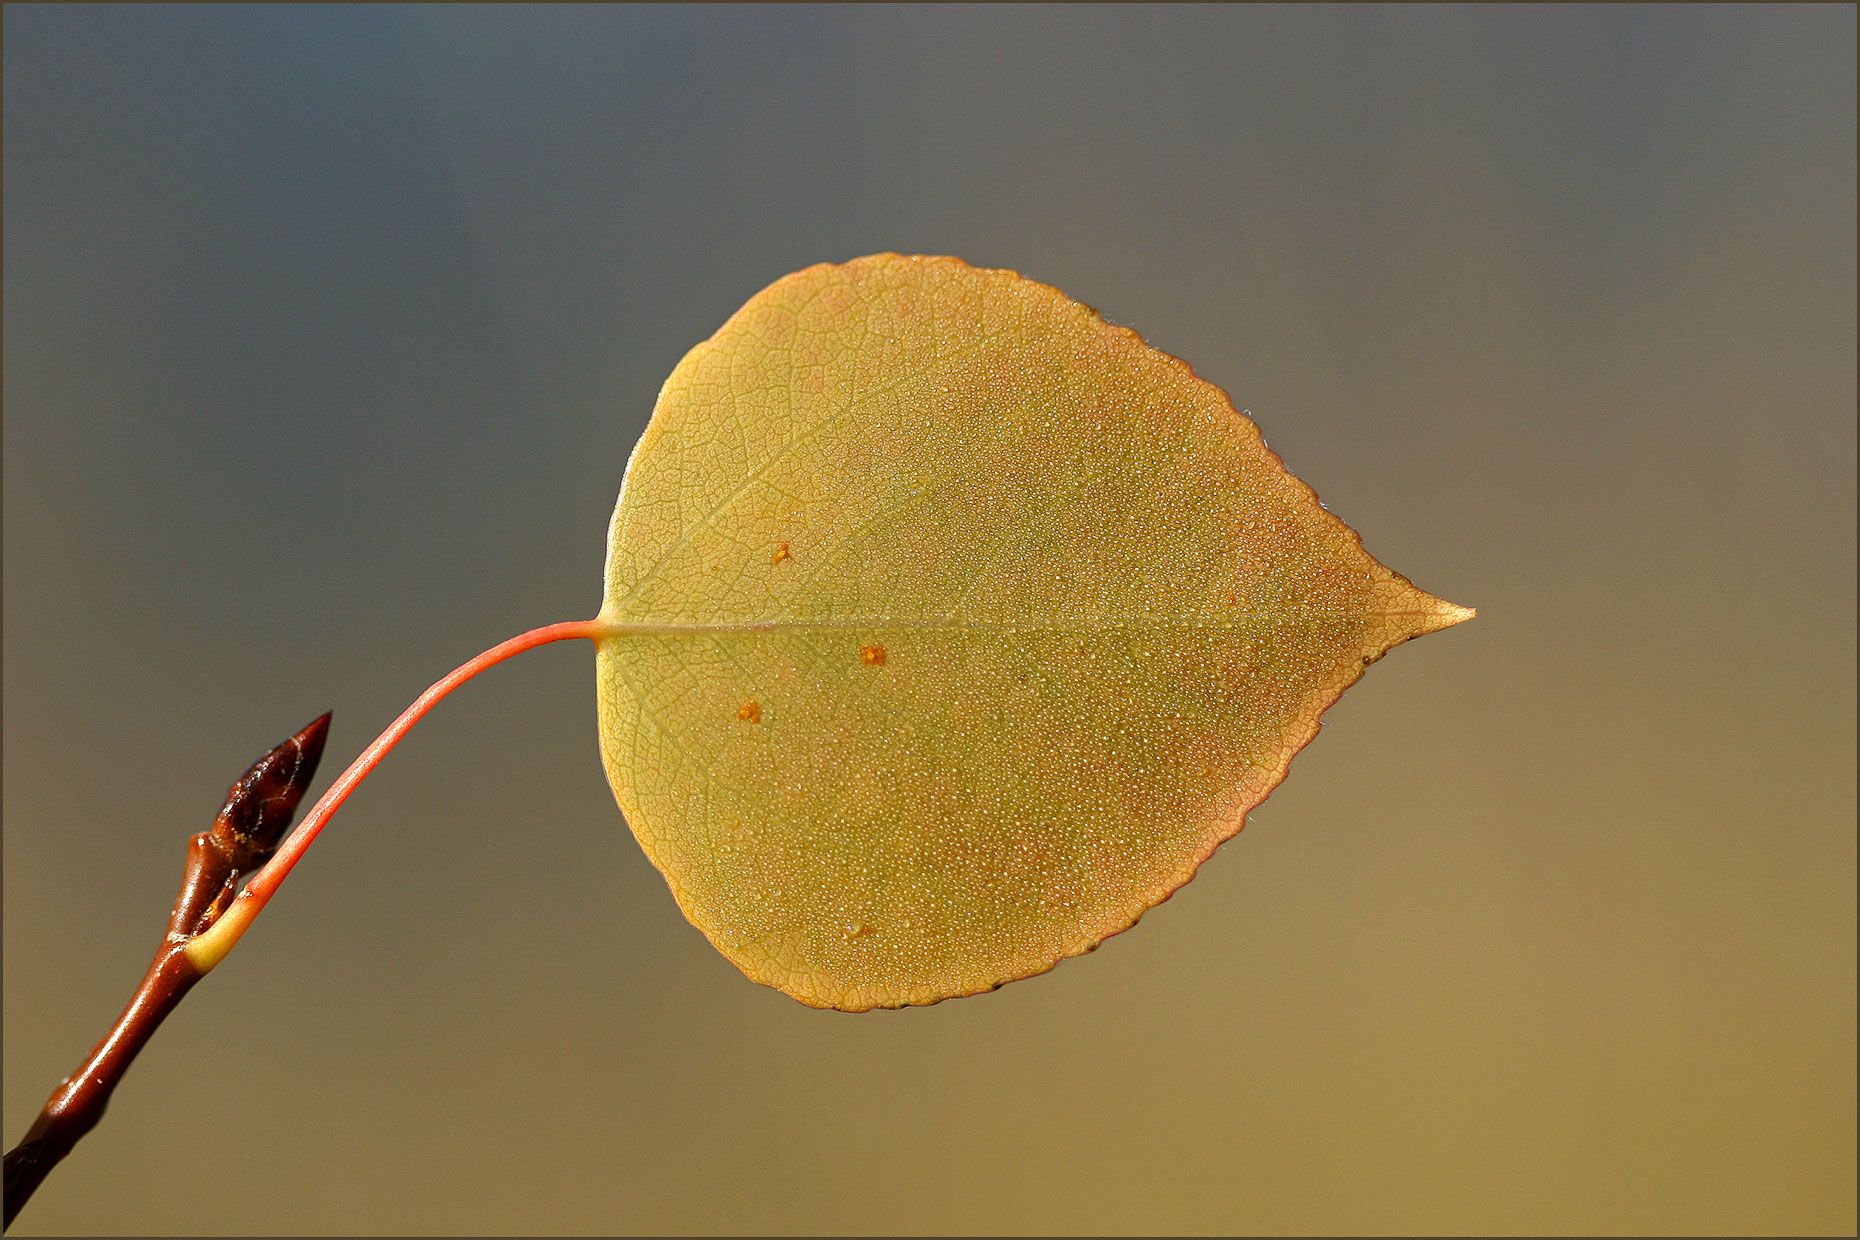 Solitary leaf, Canmore, Alberta, Canada